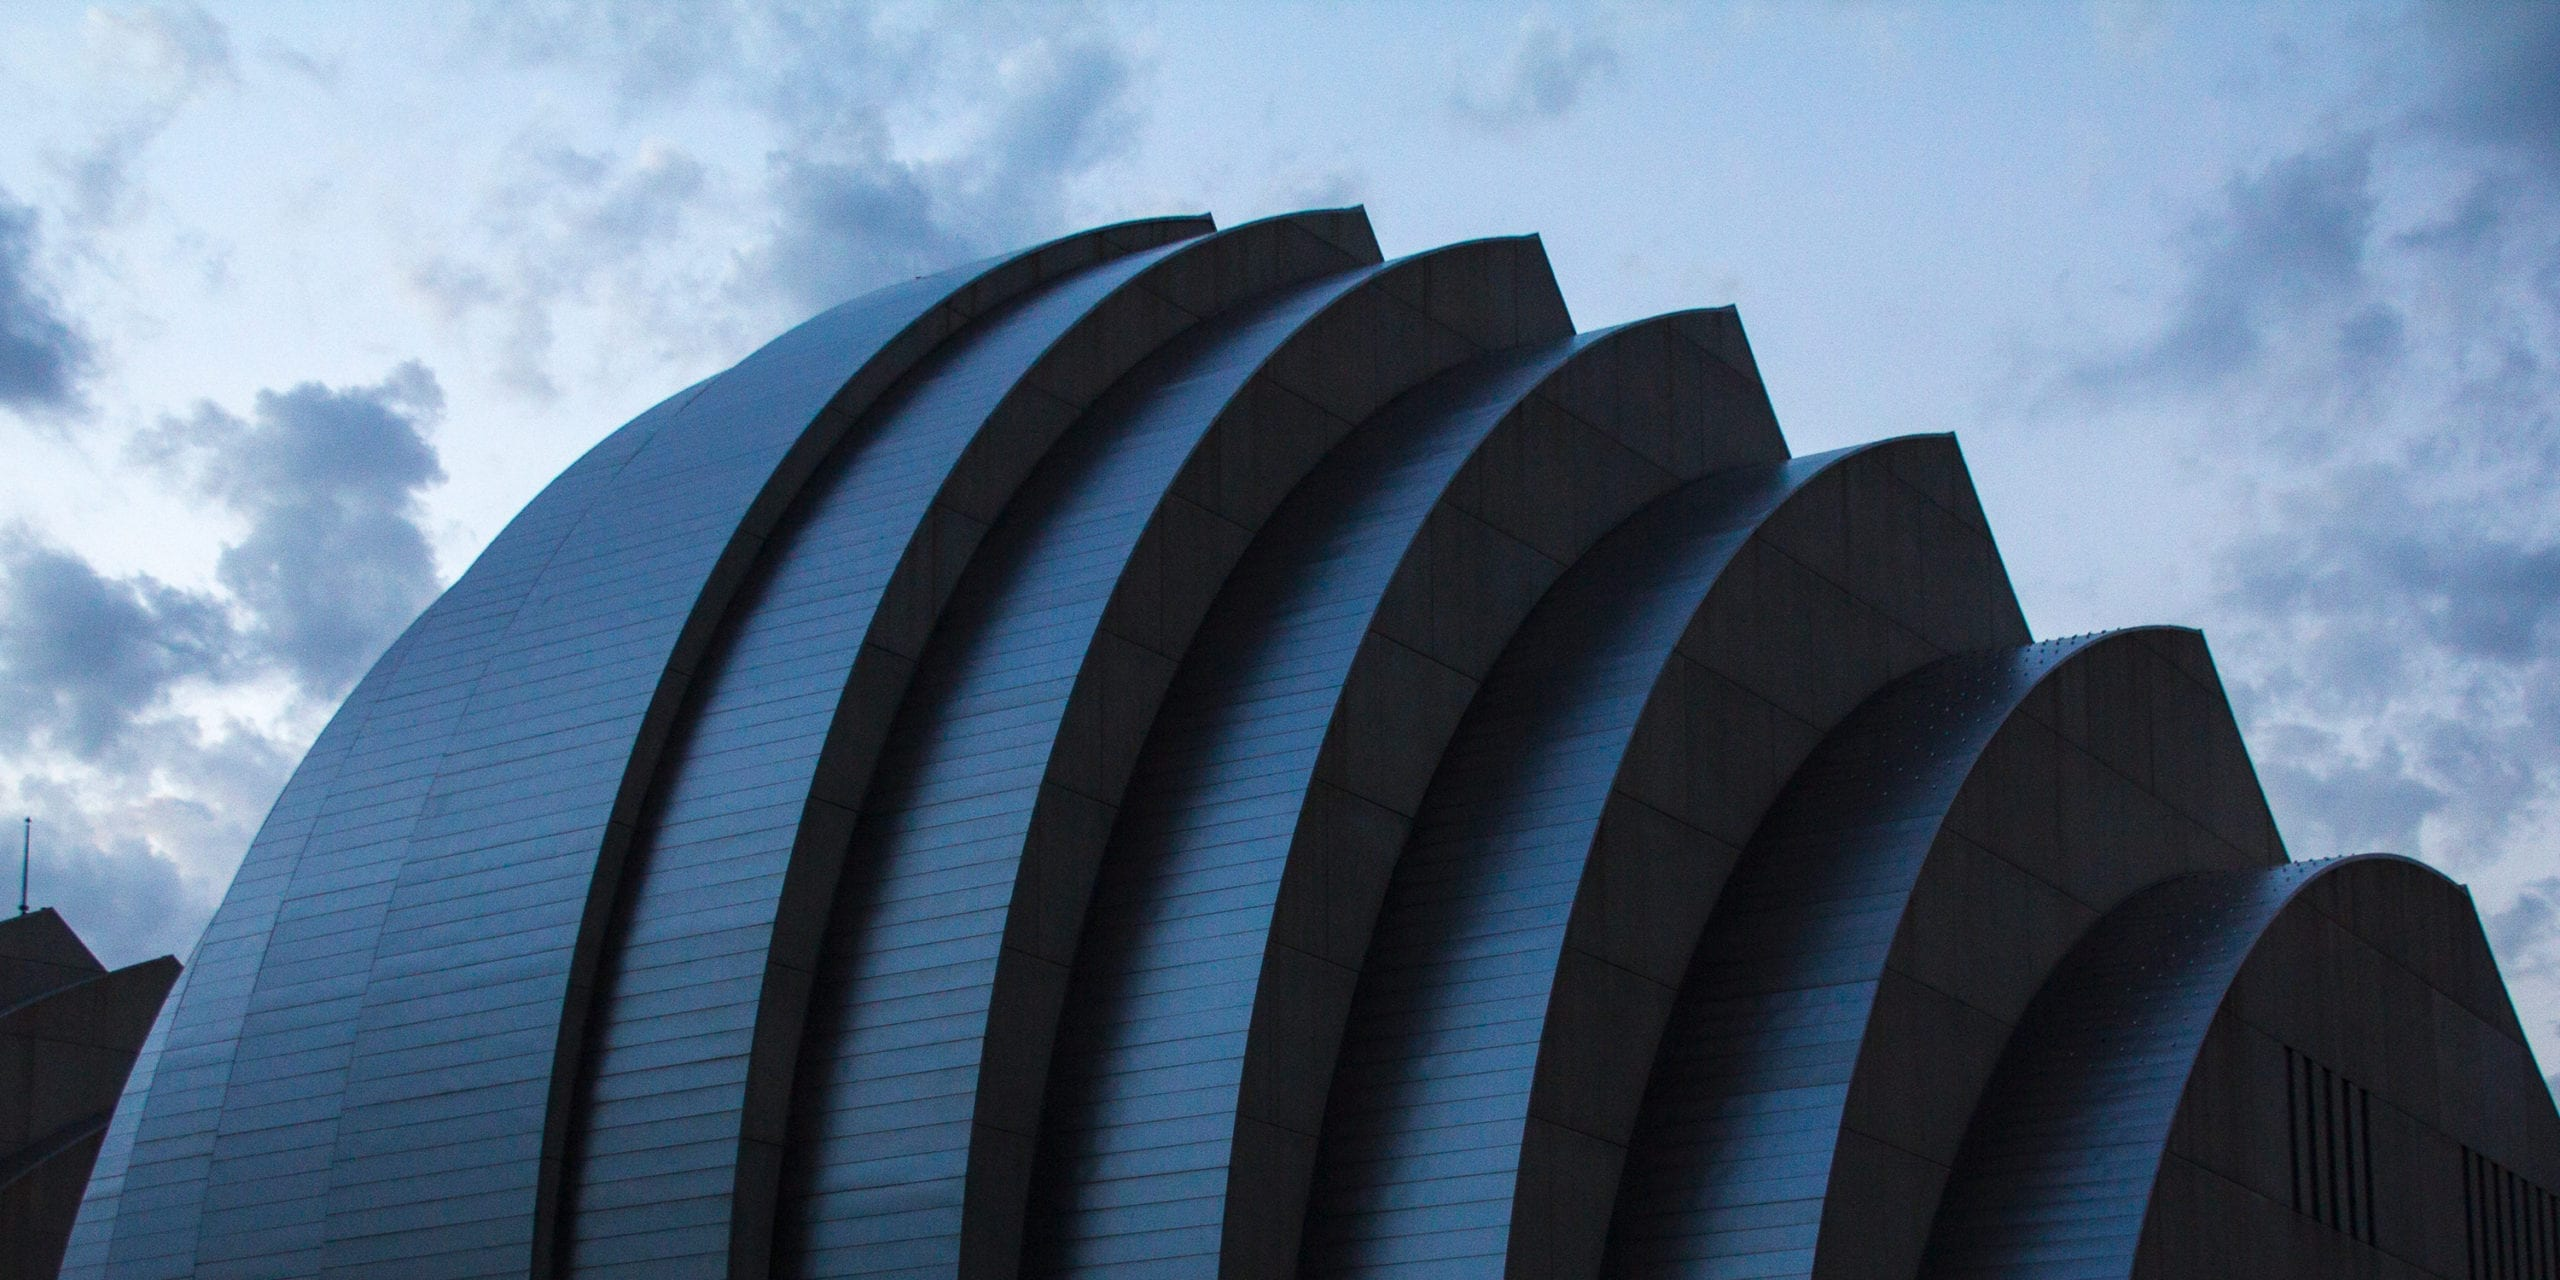 The Kaufmann Center for the Performing Arts. Photo by Flickr user Anthony (26424952@N00).